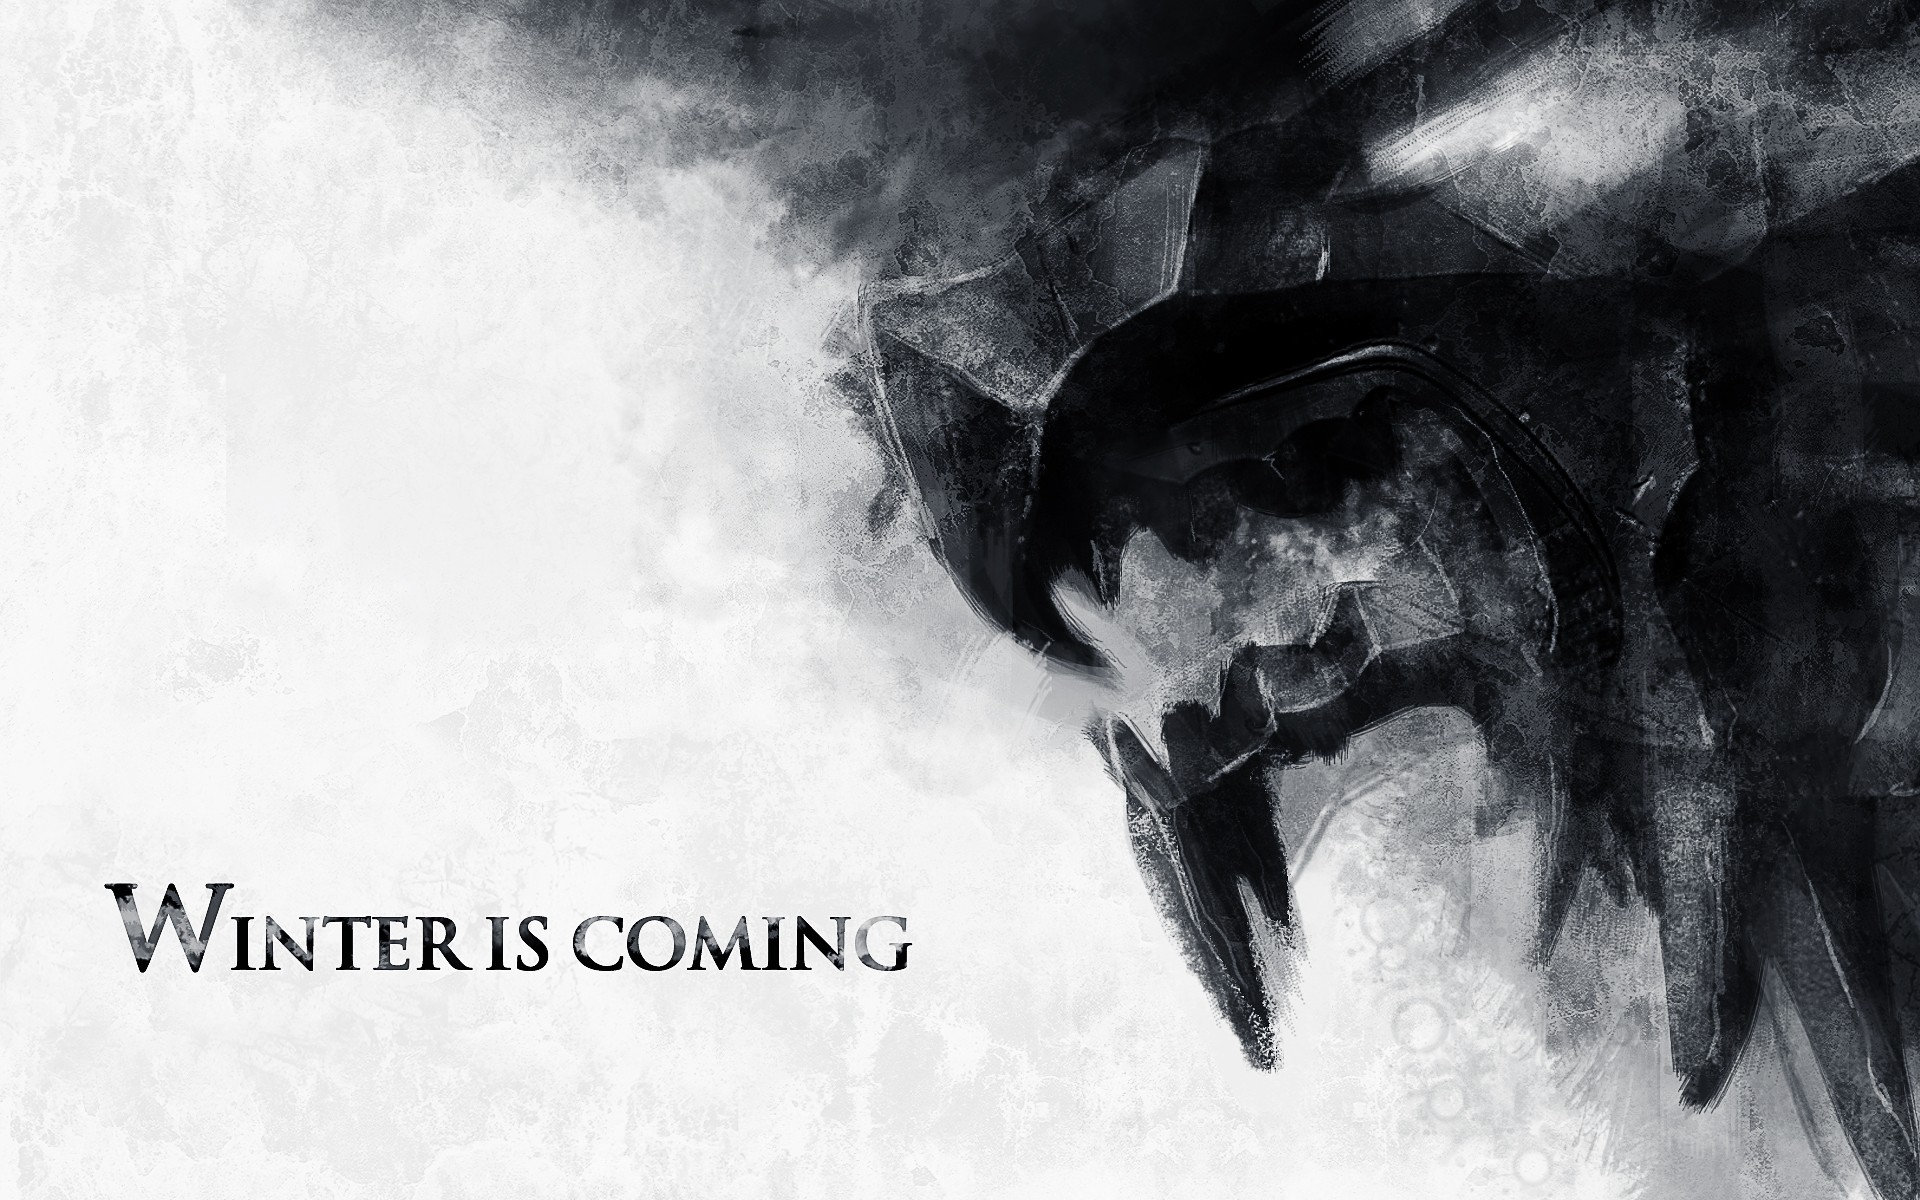 Winter is Coming wallpapers Winter is Coming stock photos 1920x1200